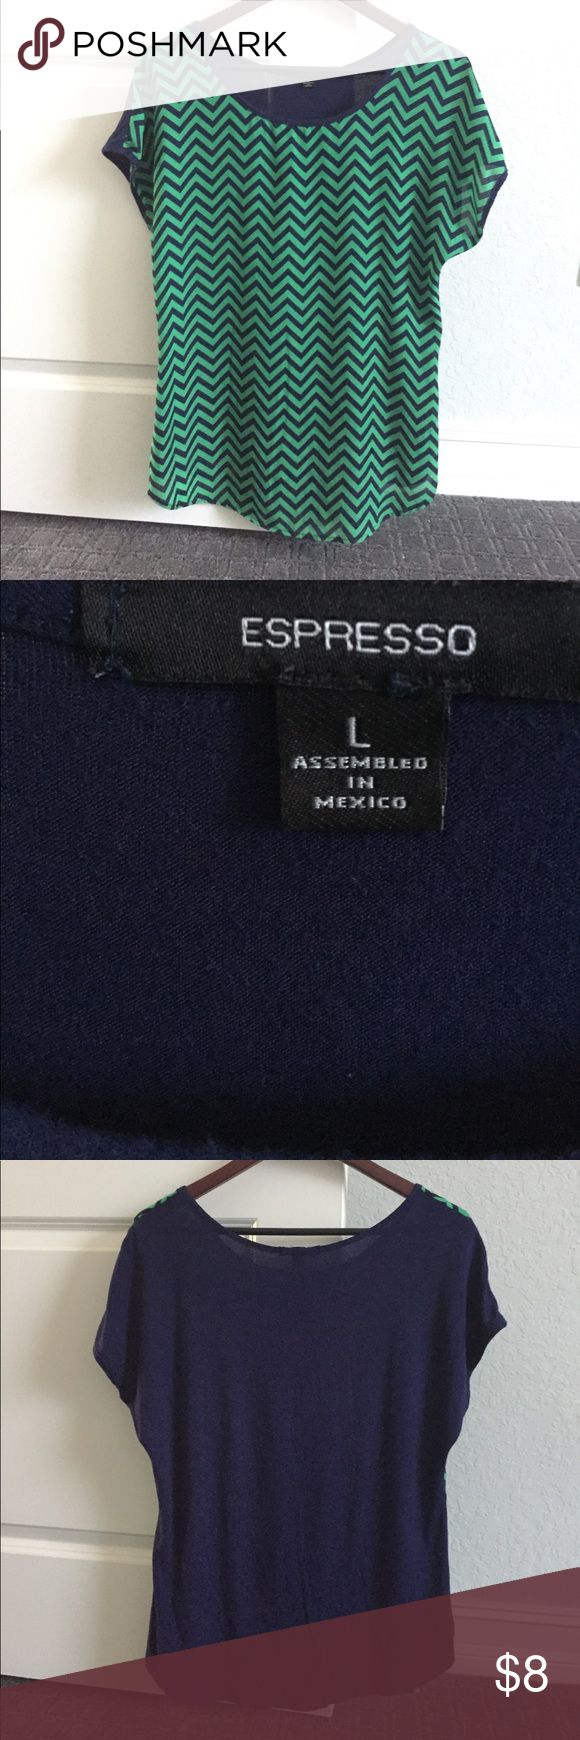 Espresso Chevron Shirt GUC- Cute top - paired it with an open navy blue sweater - It says large, but I think it's more like a big medium. Tops